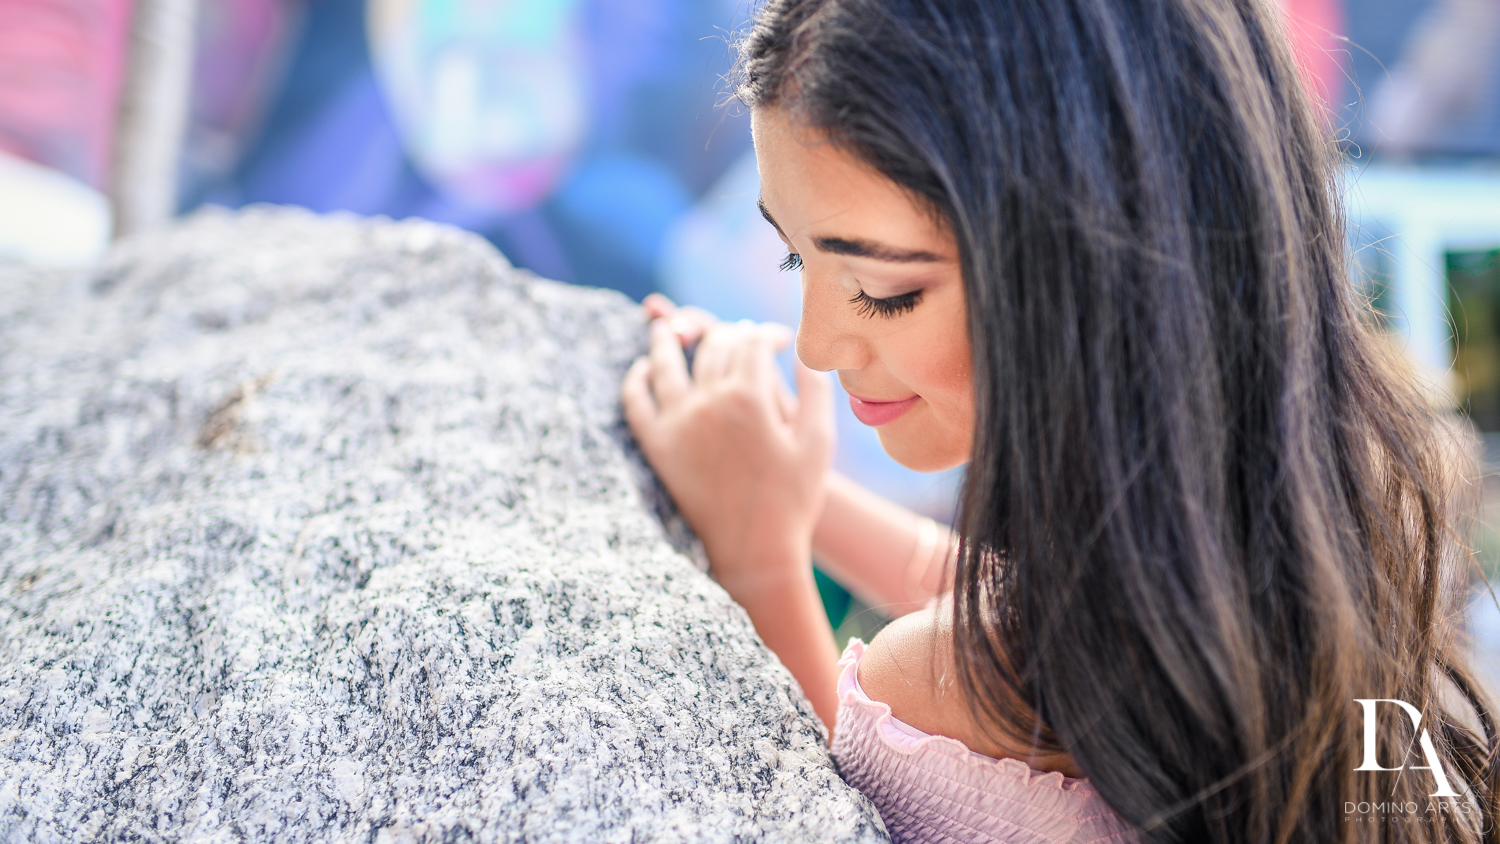 Beautiful Pre Bat Mitzvah Photography at Wynwood Walls by Domino Arts Photography